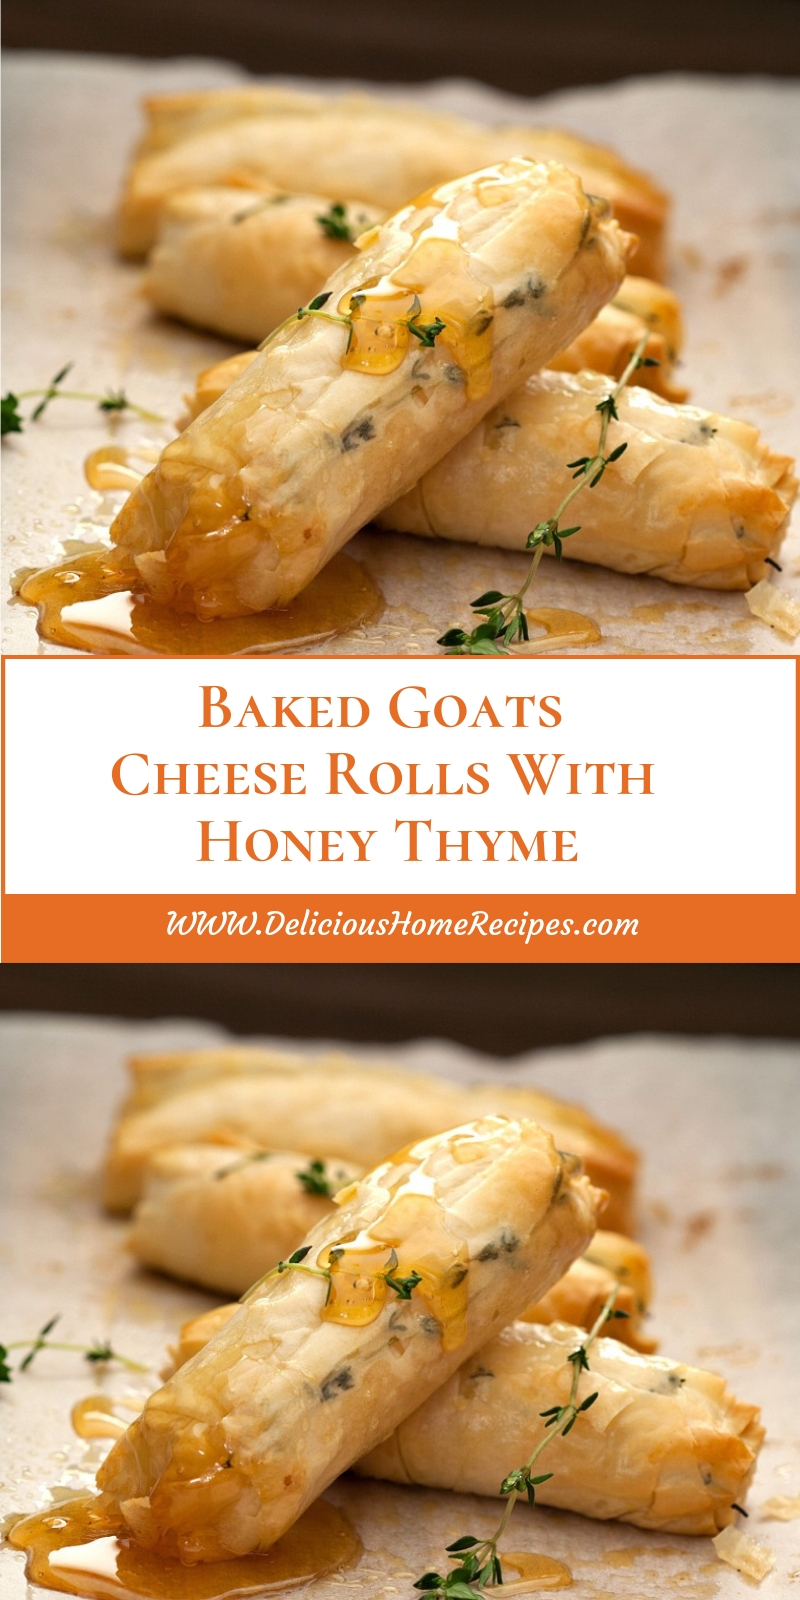 Baked Goats Cheese Rolls With Honey Thyme